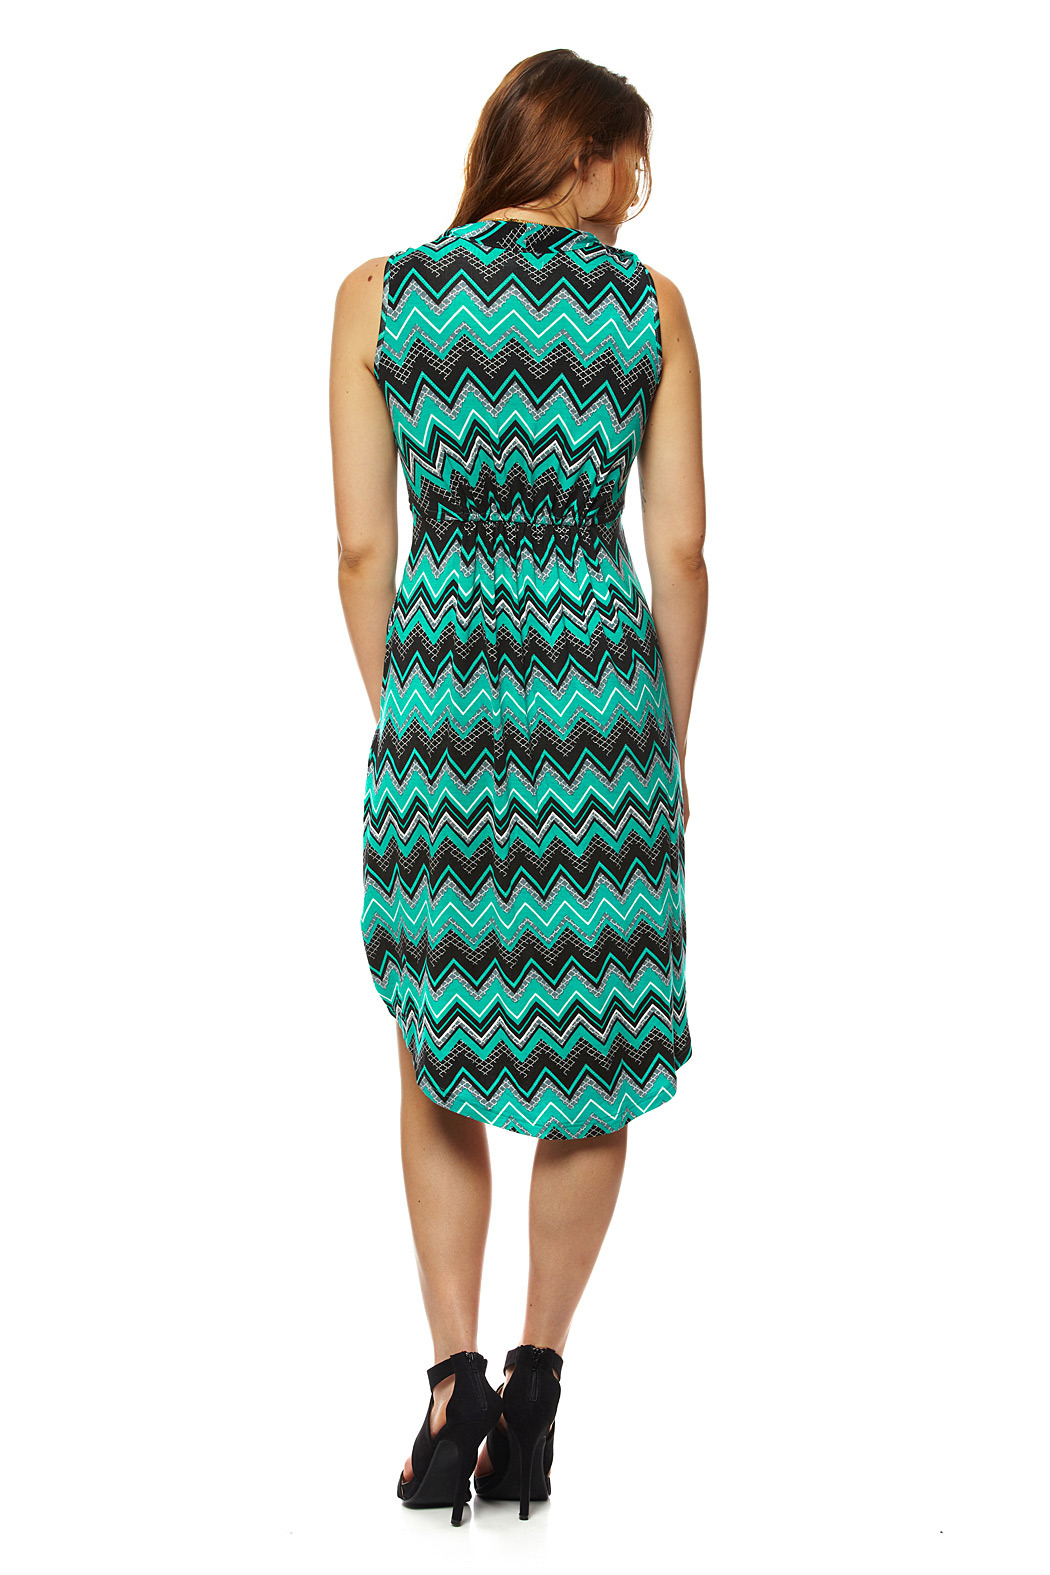 Vfish Designs Hi Lo Sharon Dress From New Orleans By Glam